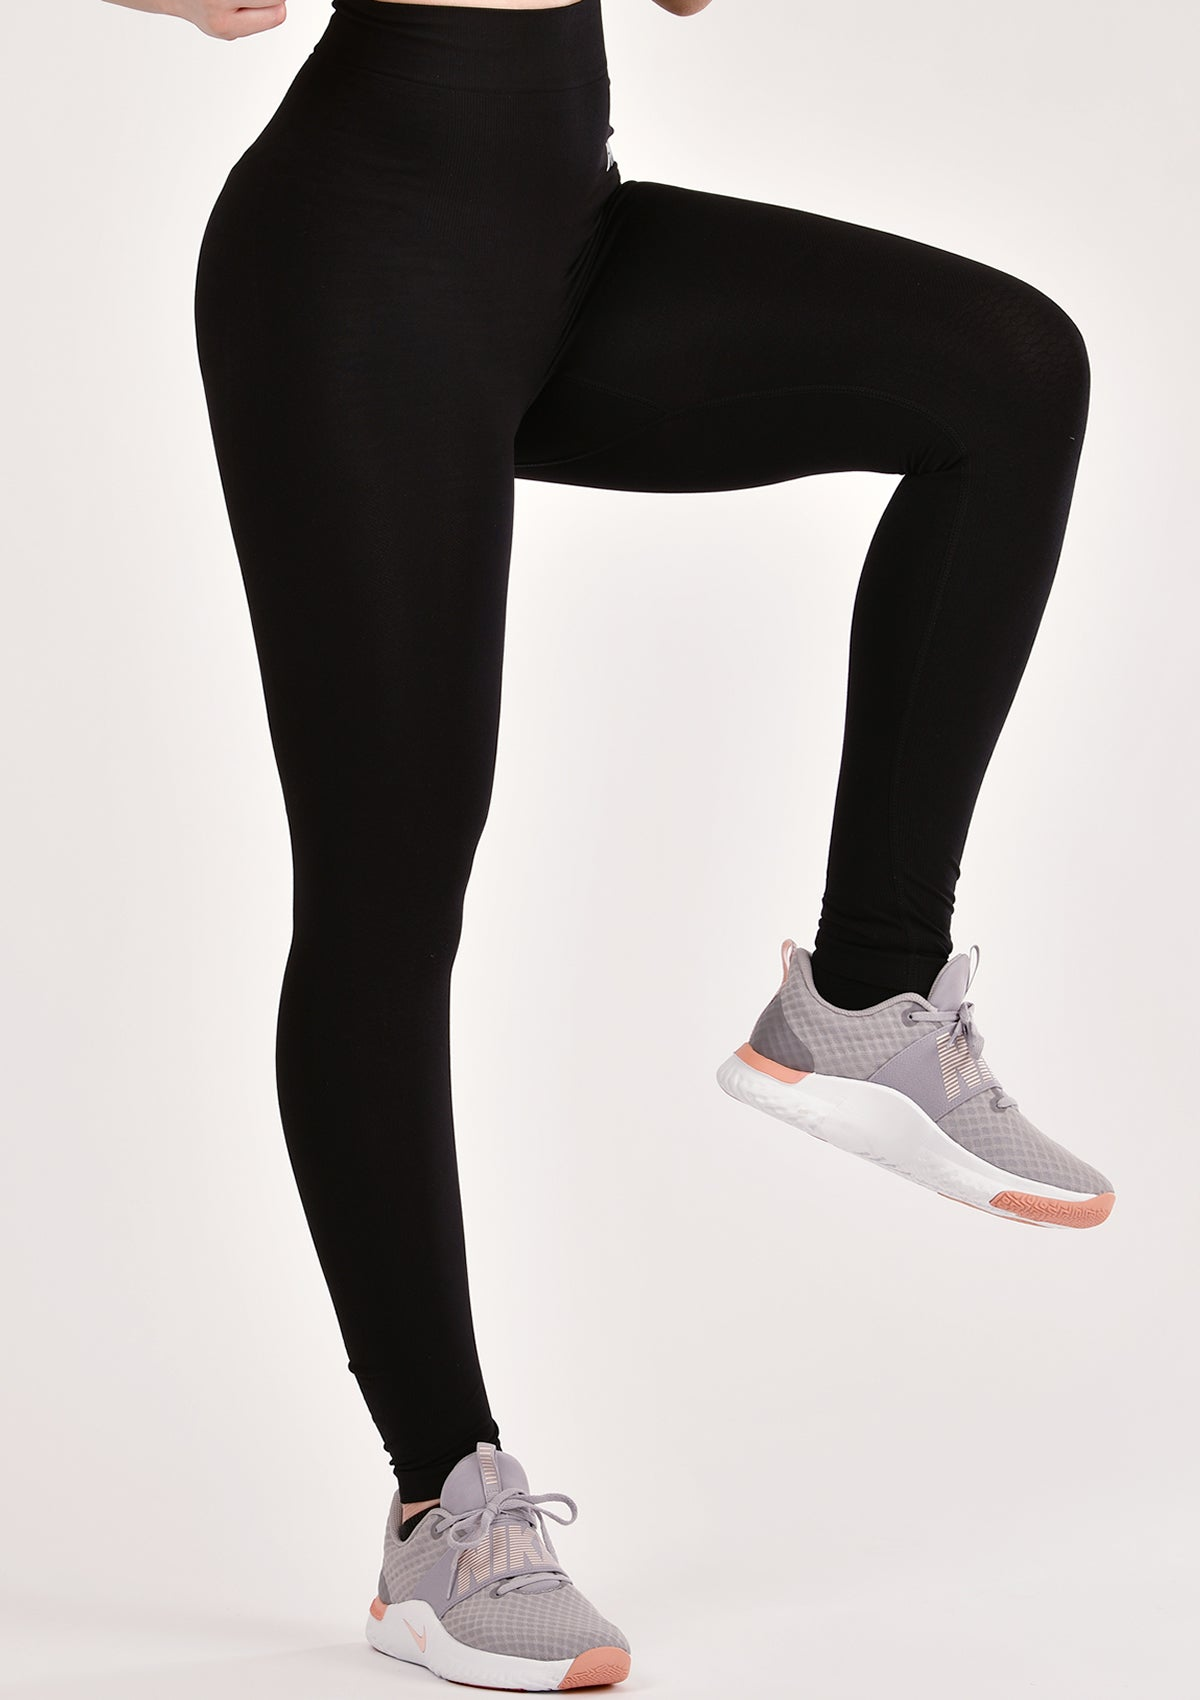 Sancerre Black Leggings